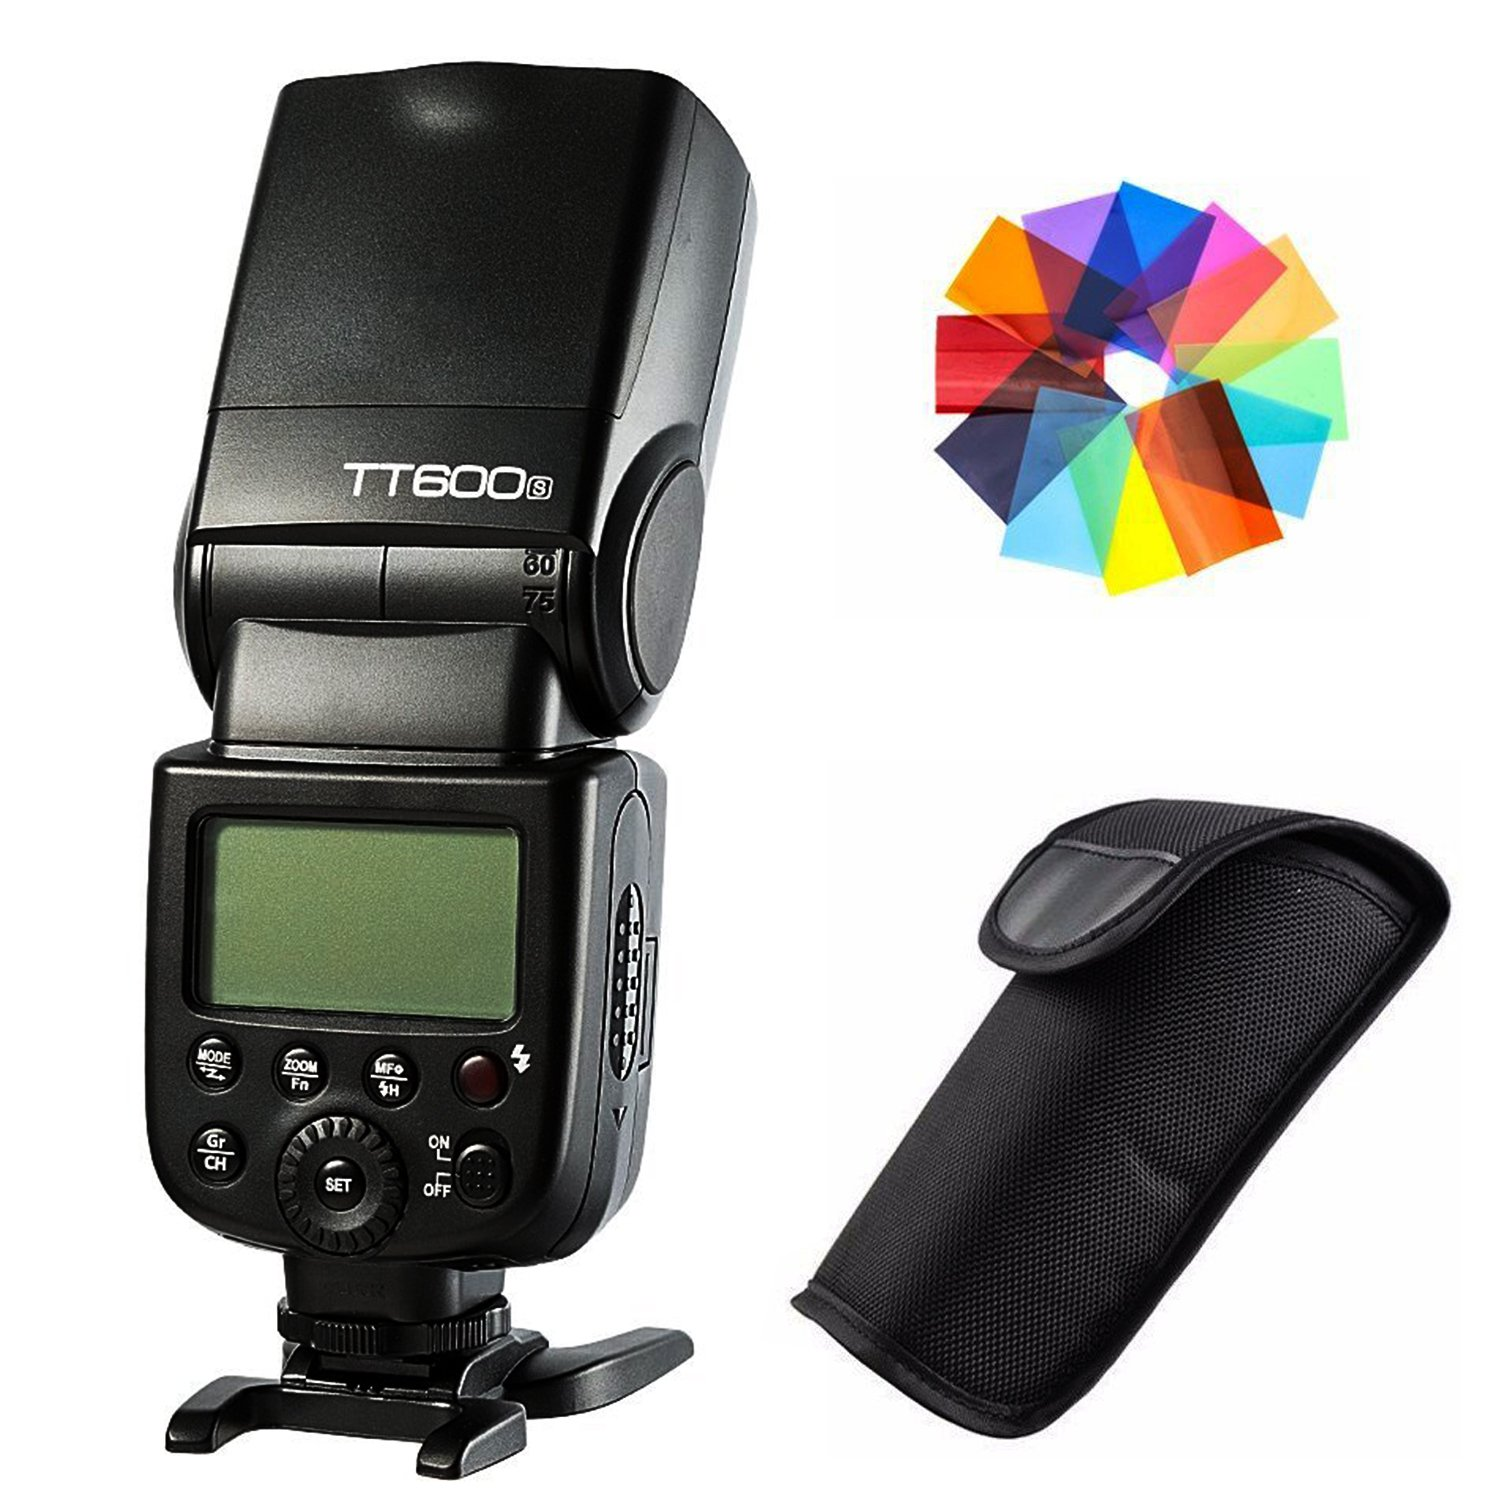 Godox tt600s gn60 2.4 Gワイヤレスフラッシュスピードライトfor Sony a7 a7r a7s a7 II a7r II a6000 DSLRカメラwith Mi Shoe   B07CTL28YW